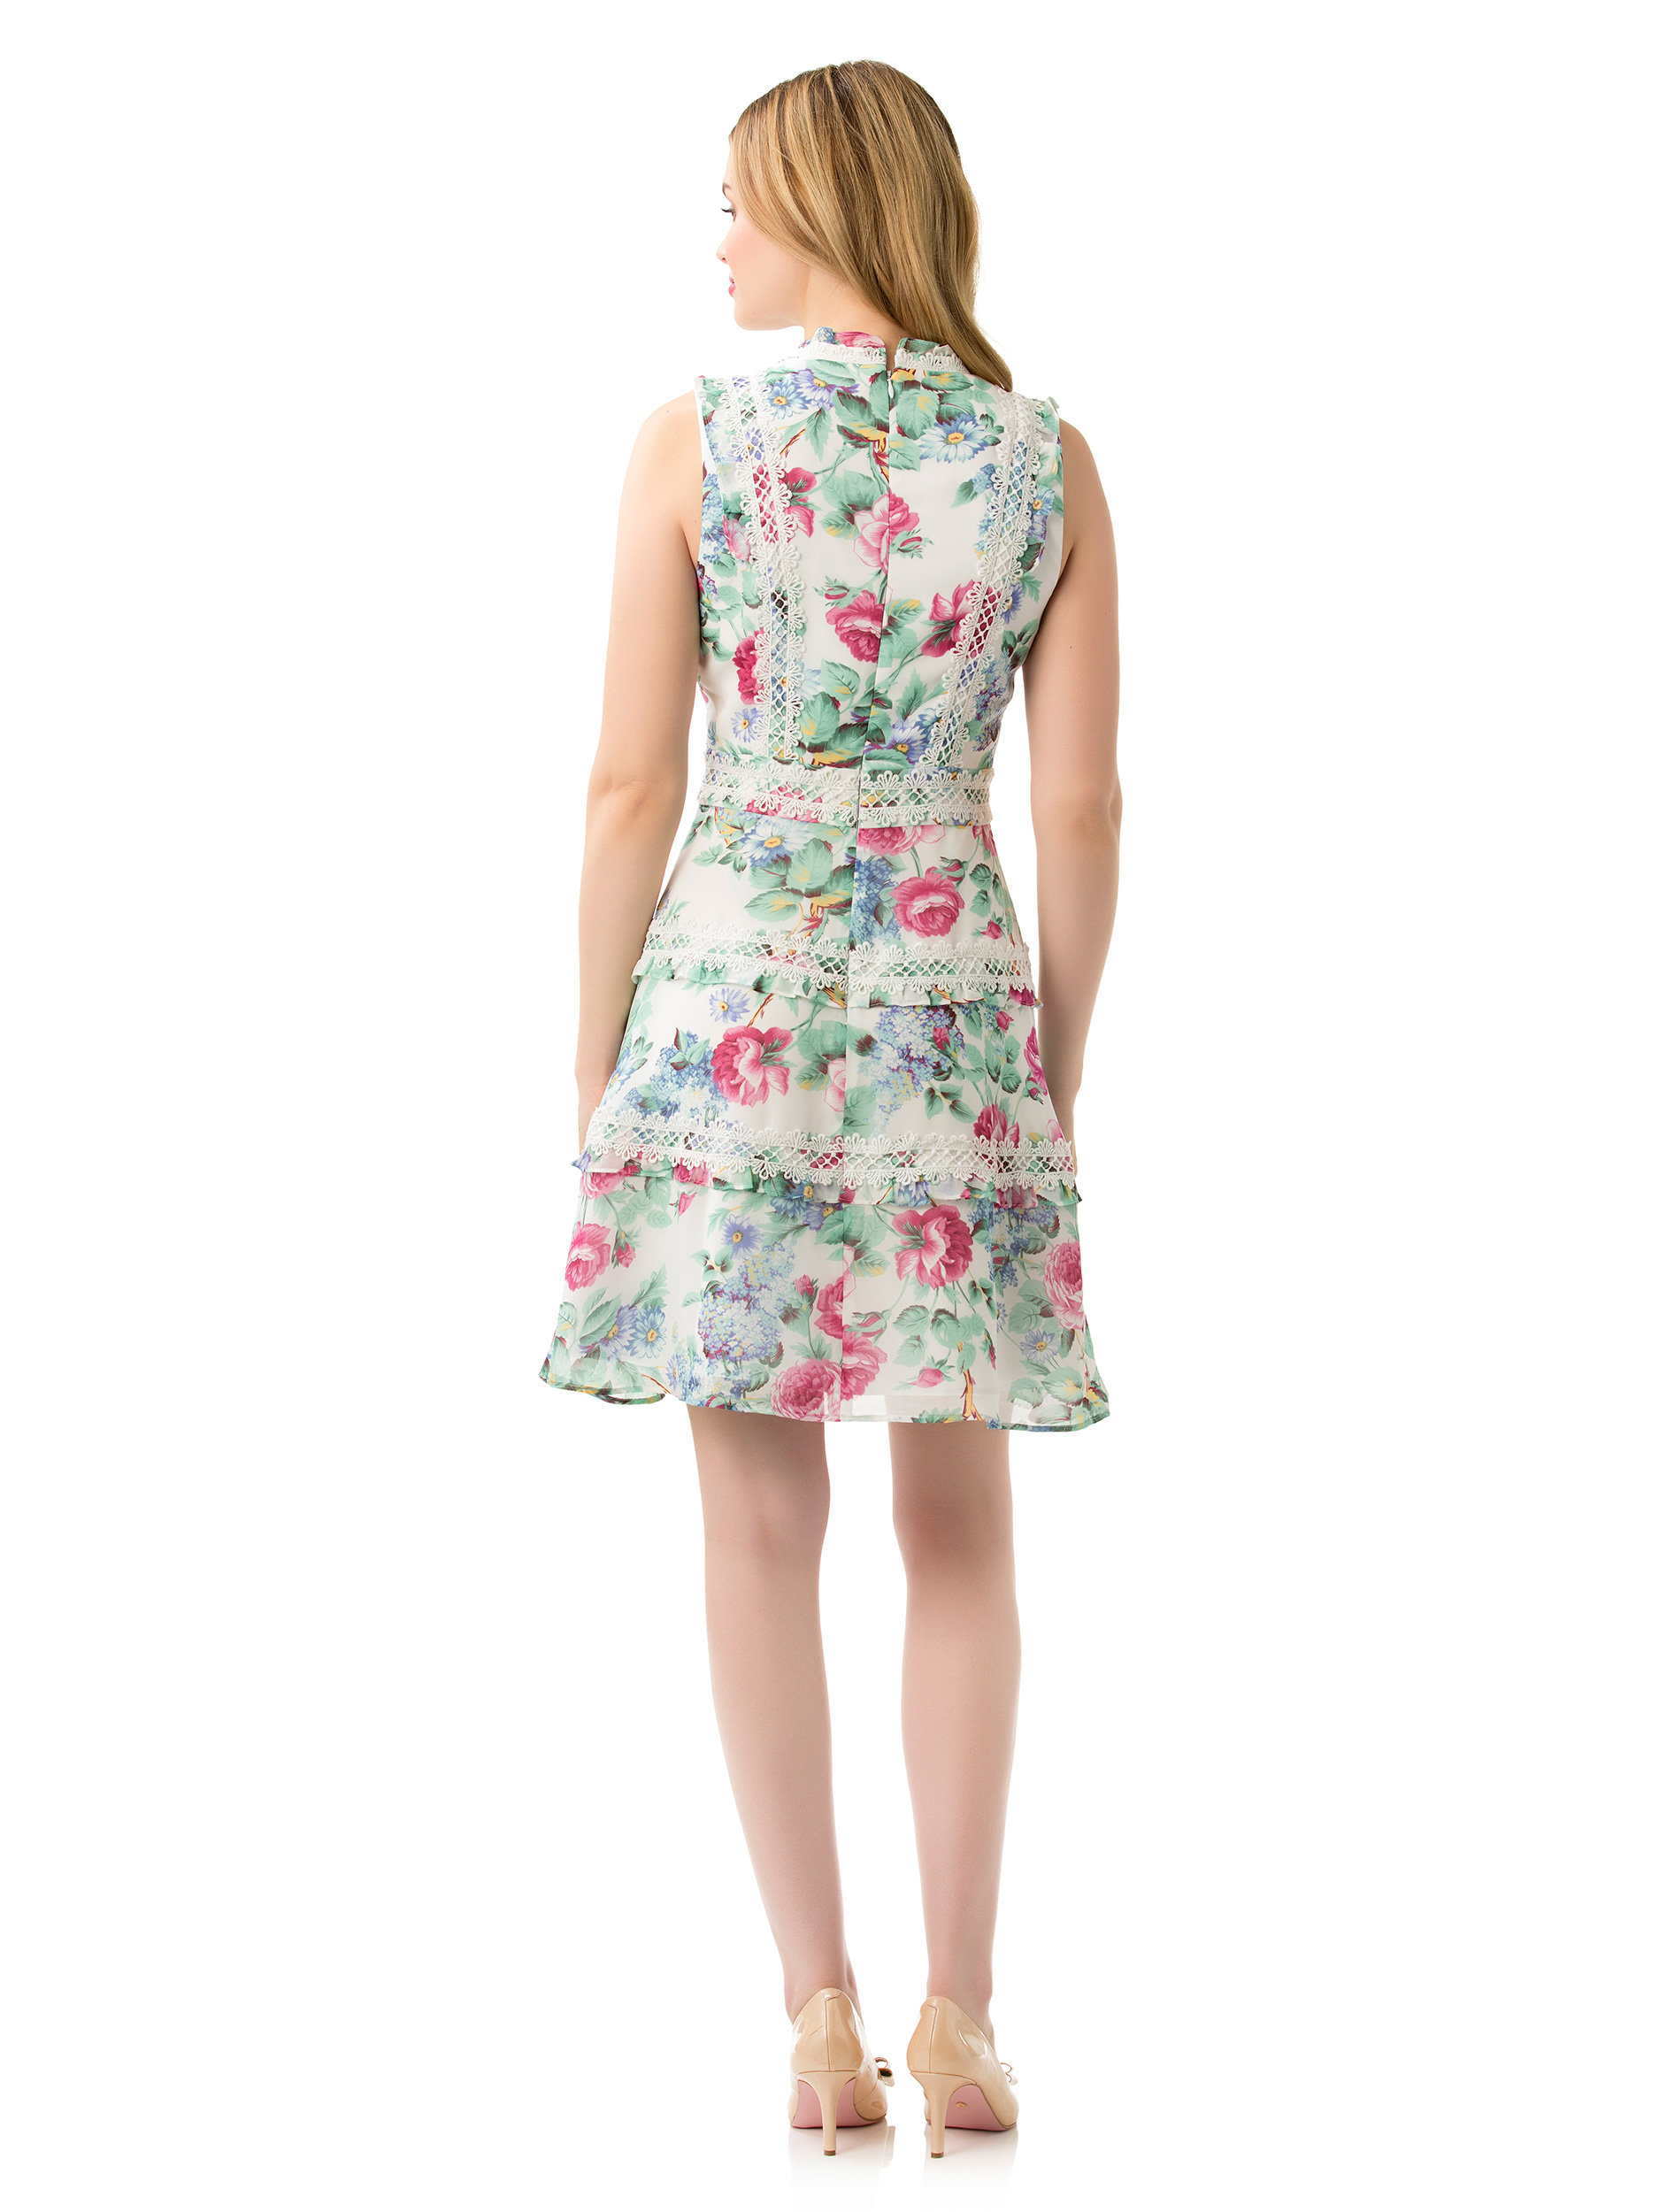 Mallory Floral Dress Shop Dresses Online From Review Instructions